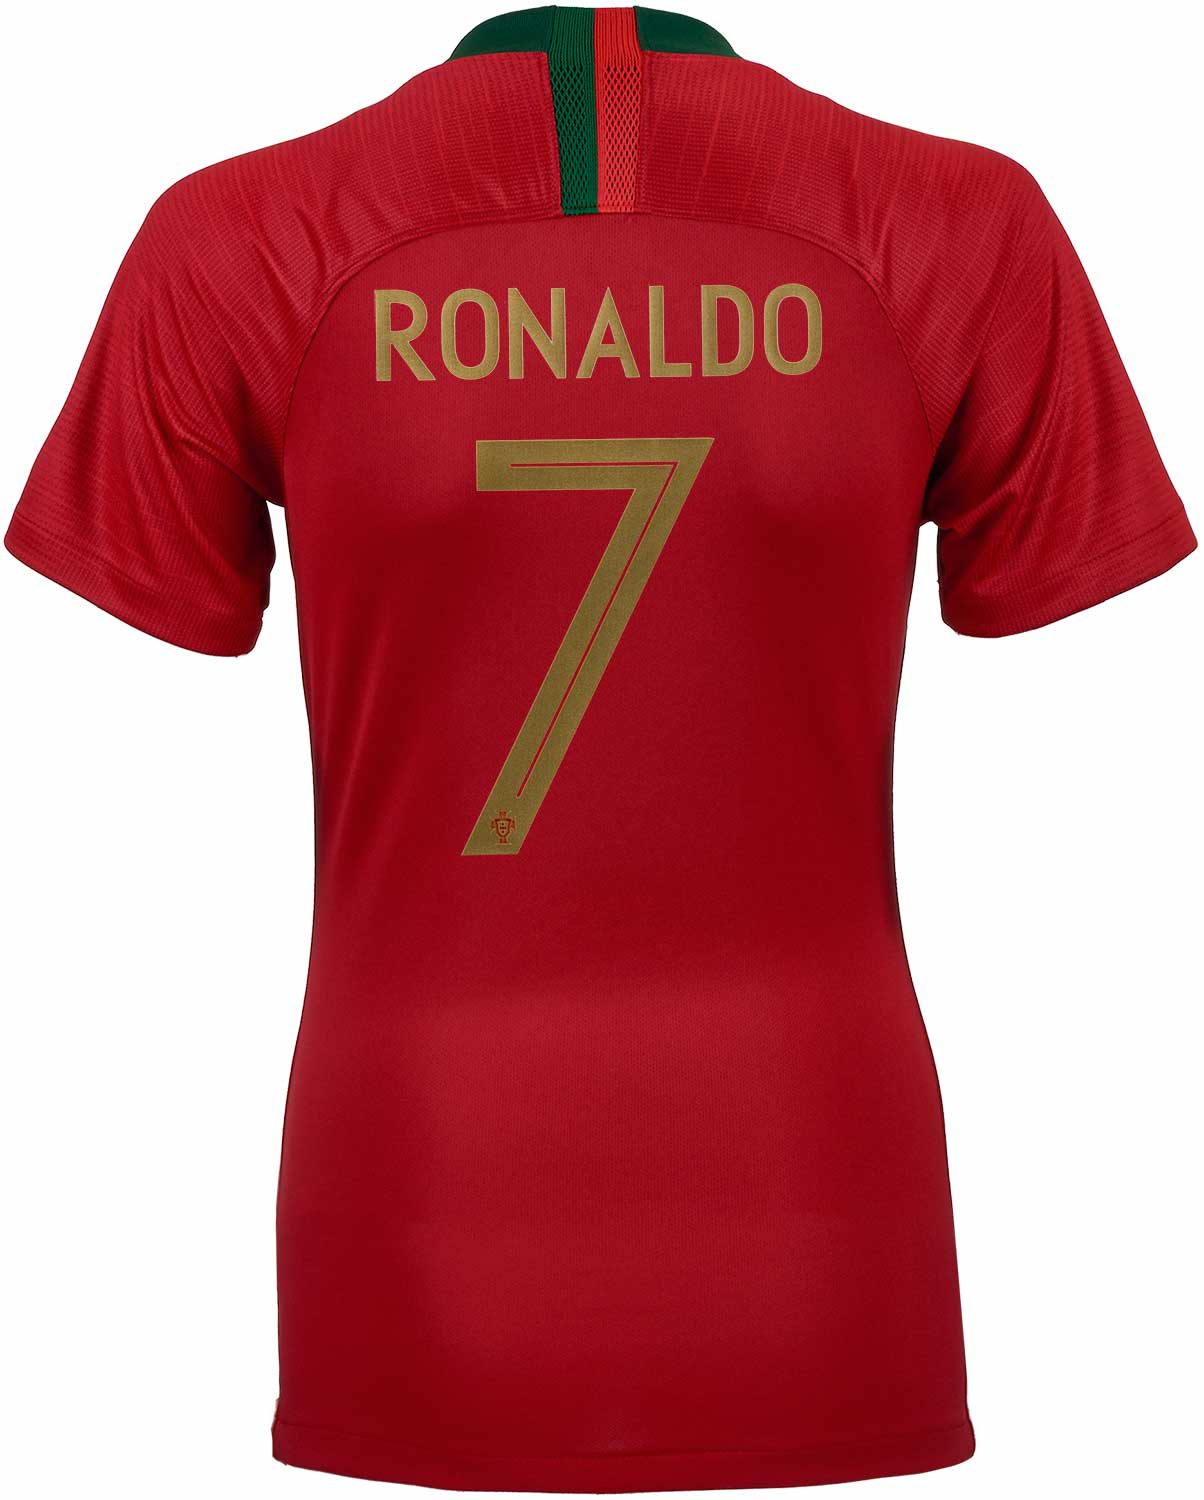 online store d5fa4 5439a 2018/19 Womens Nike Cristiano Ronaldo Portugal Home Jersey ...